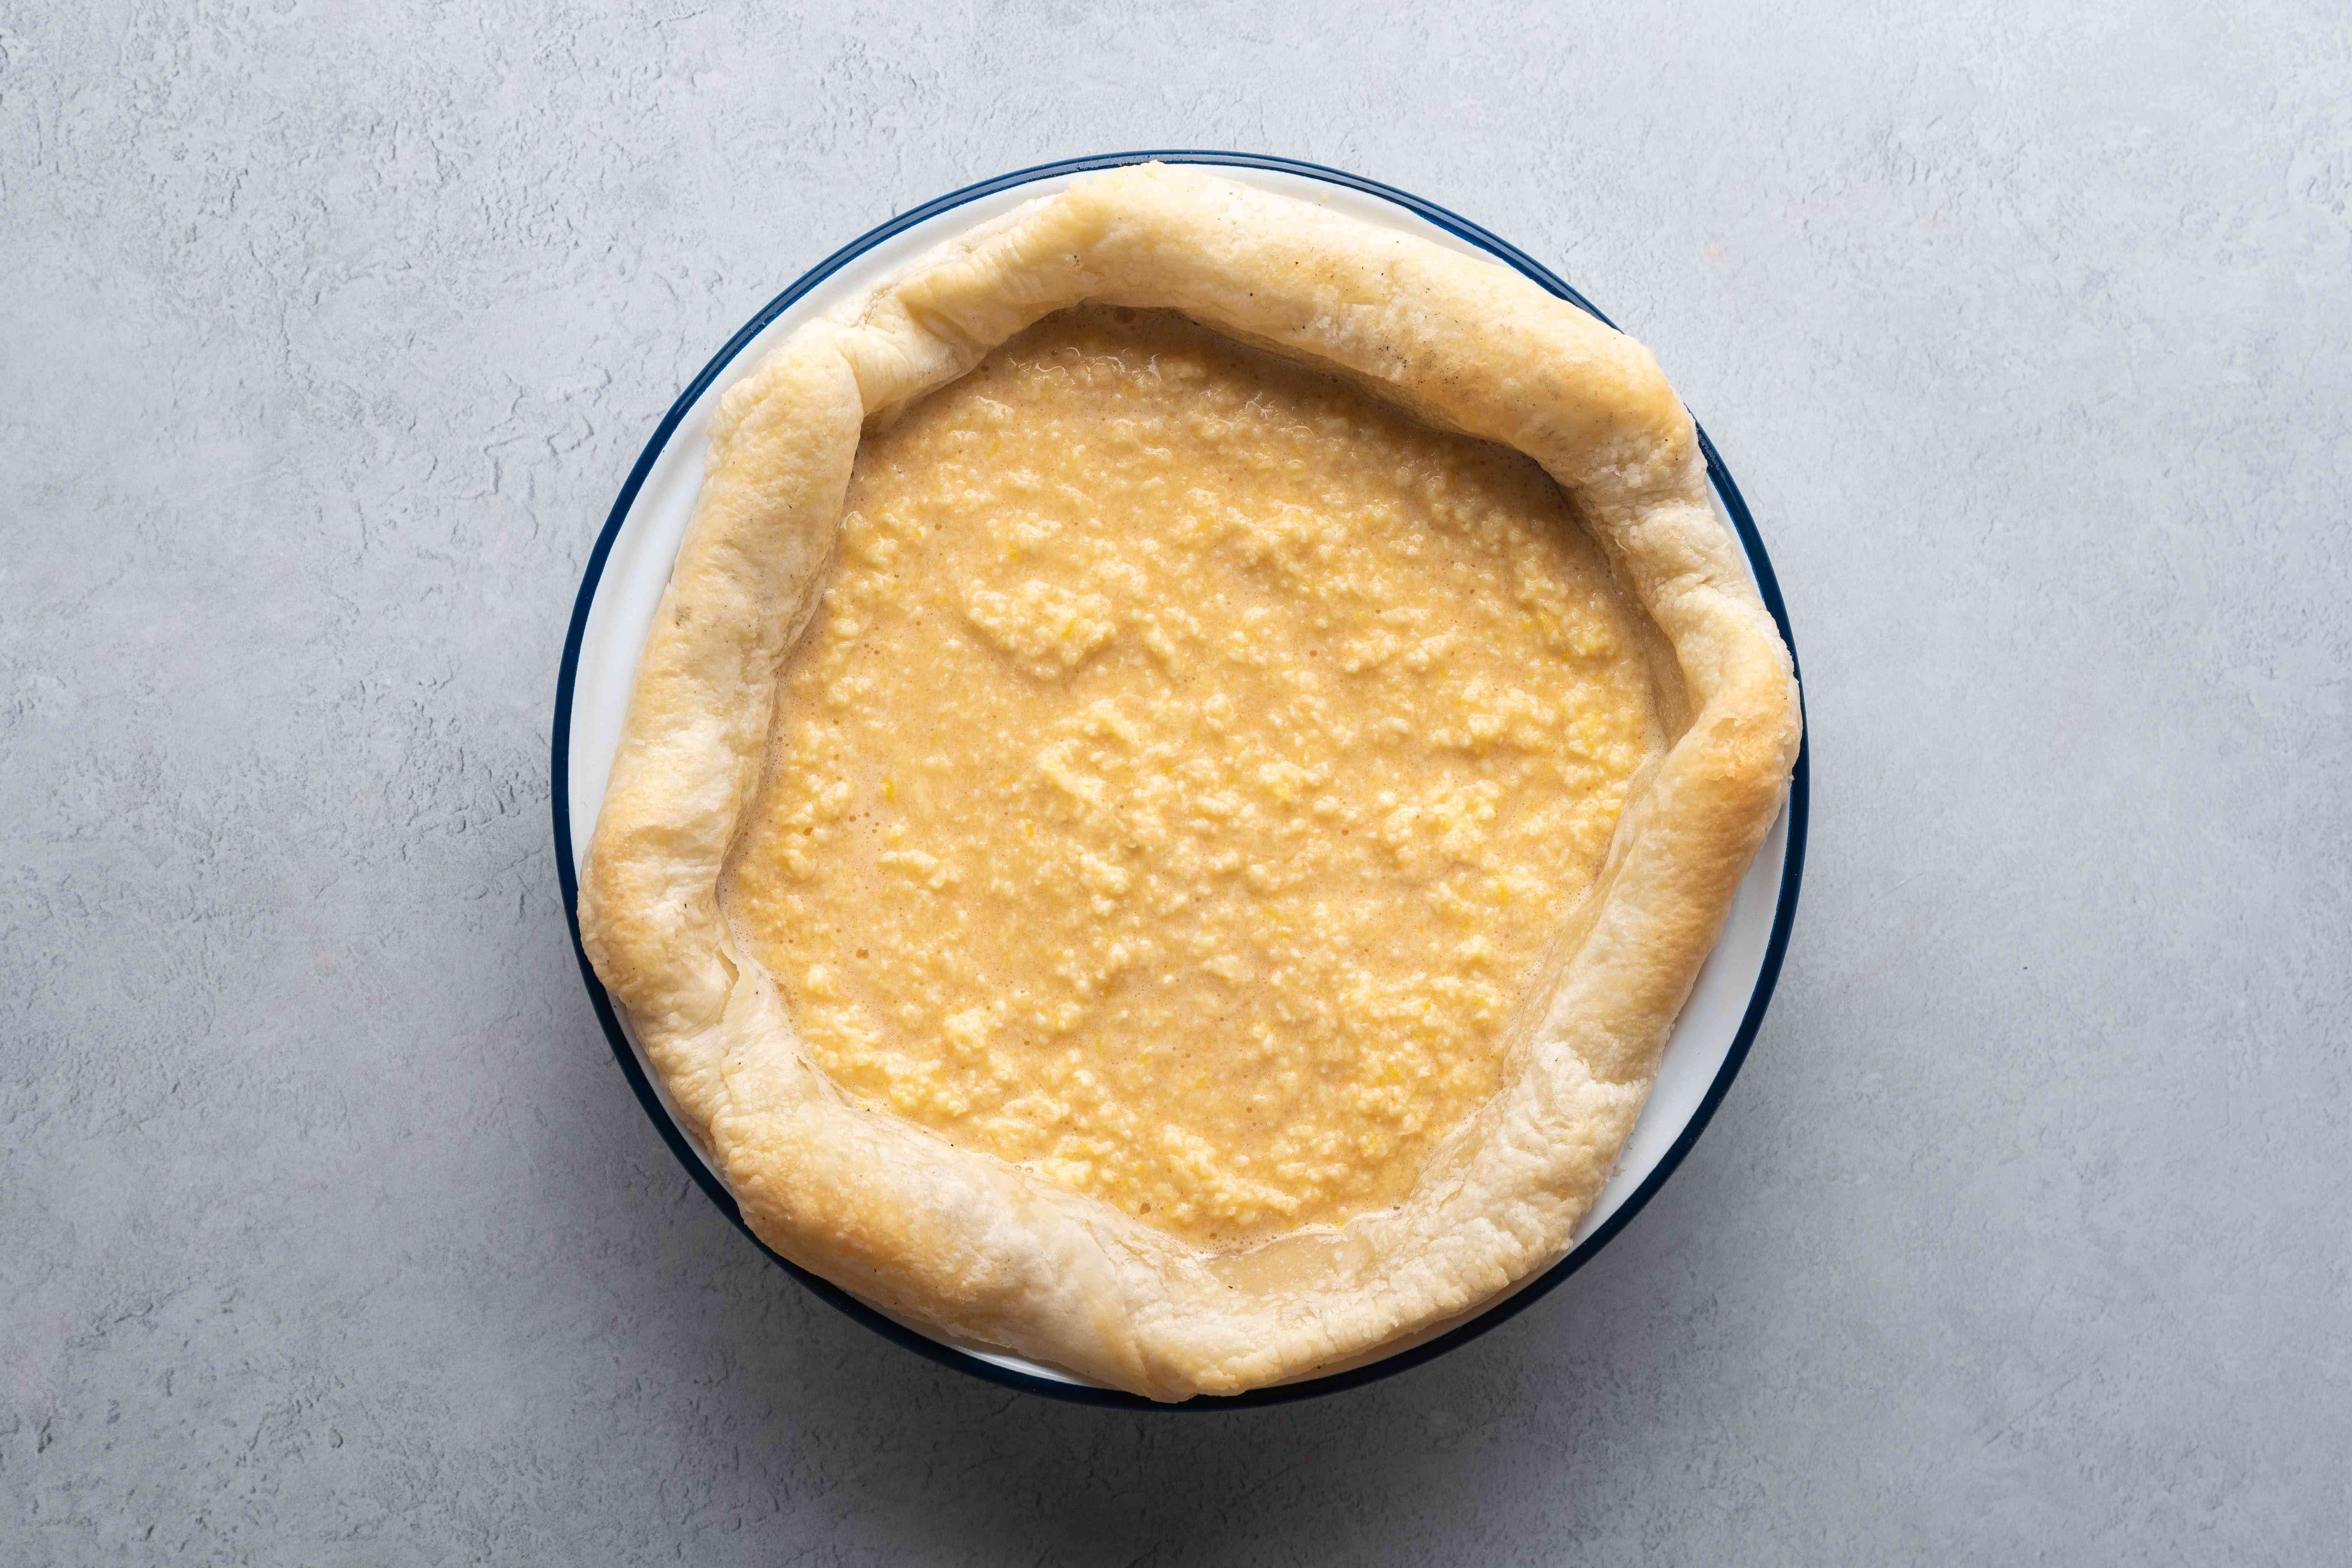 Pour the mixture into the pastry